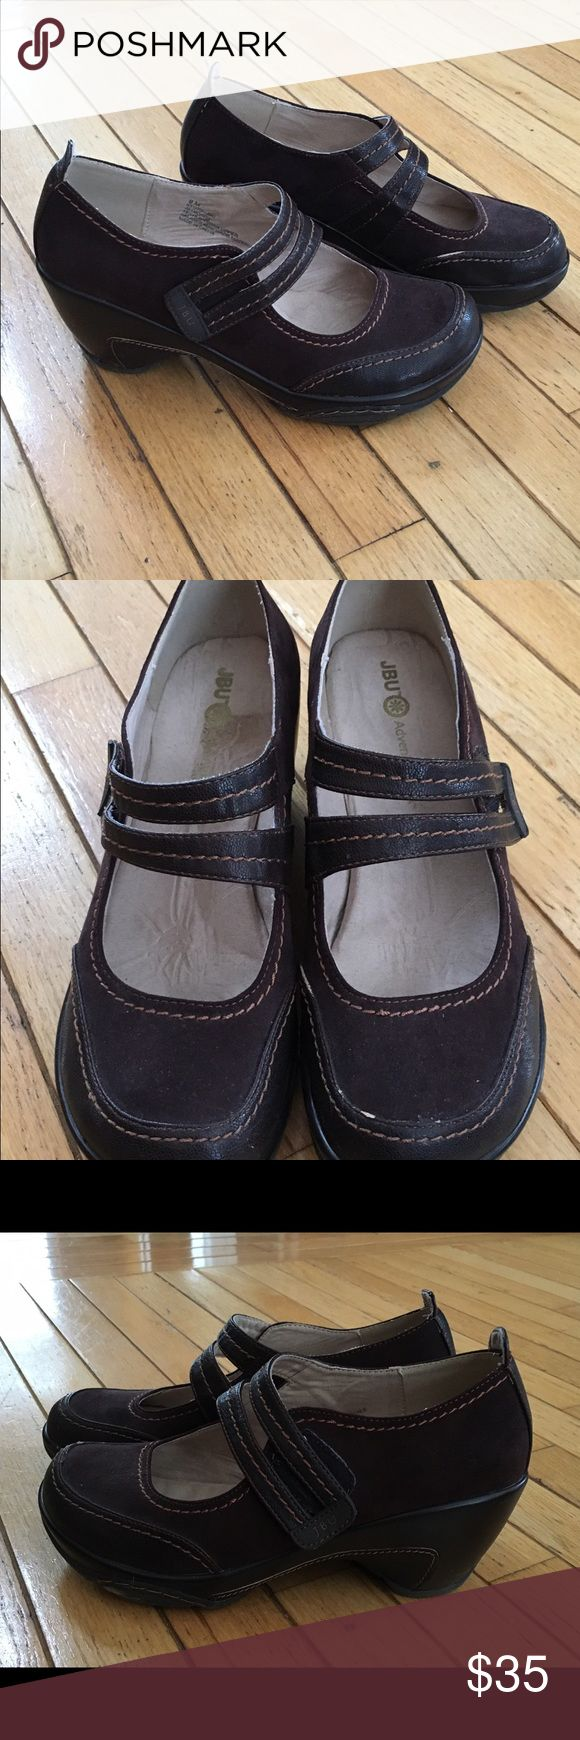 Women's Brown Jambu Mary Janes size 9 These adorable, dark brown, suede shoes are in good shape worn only a few times.  There is a little wear on the seam in one of them that lightened the color. Jambu Shoes